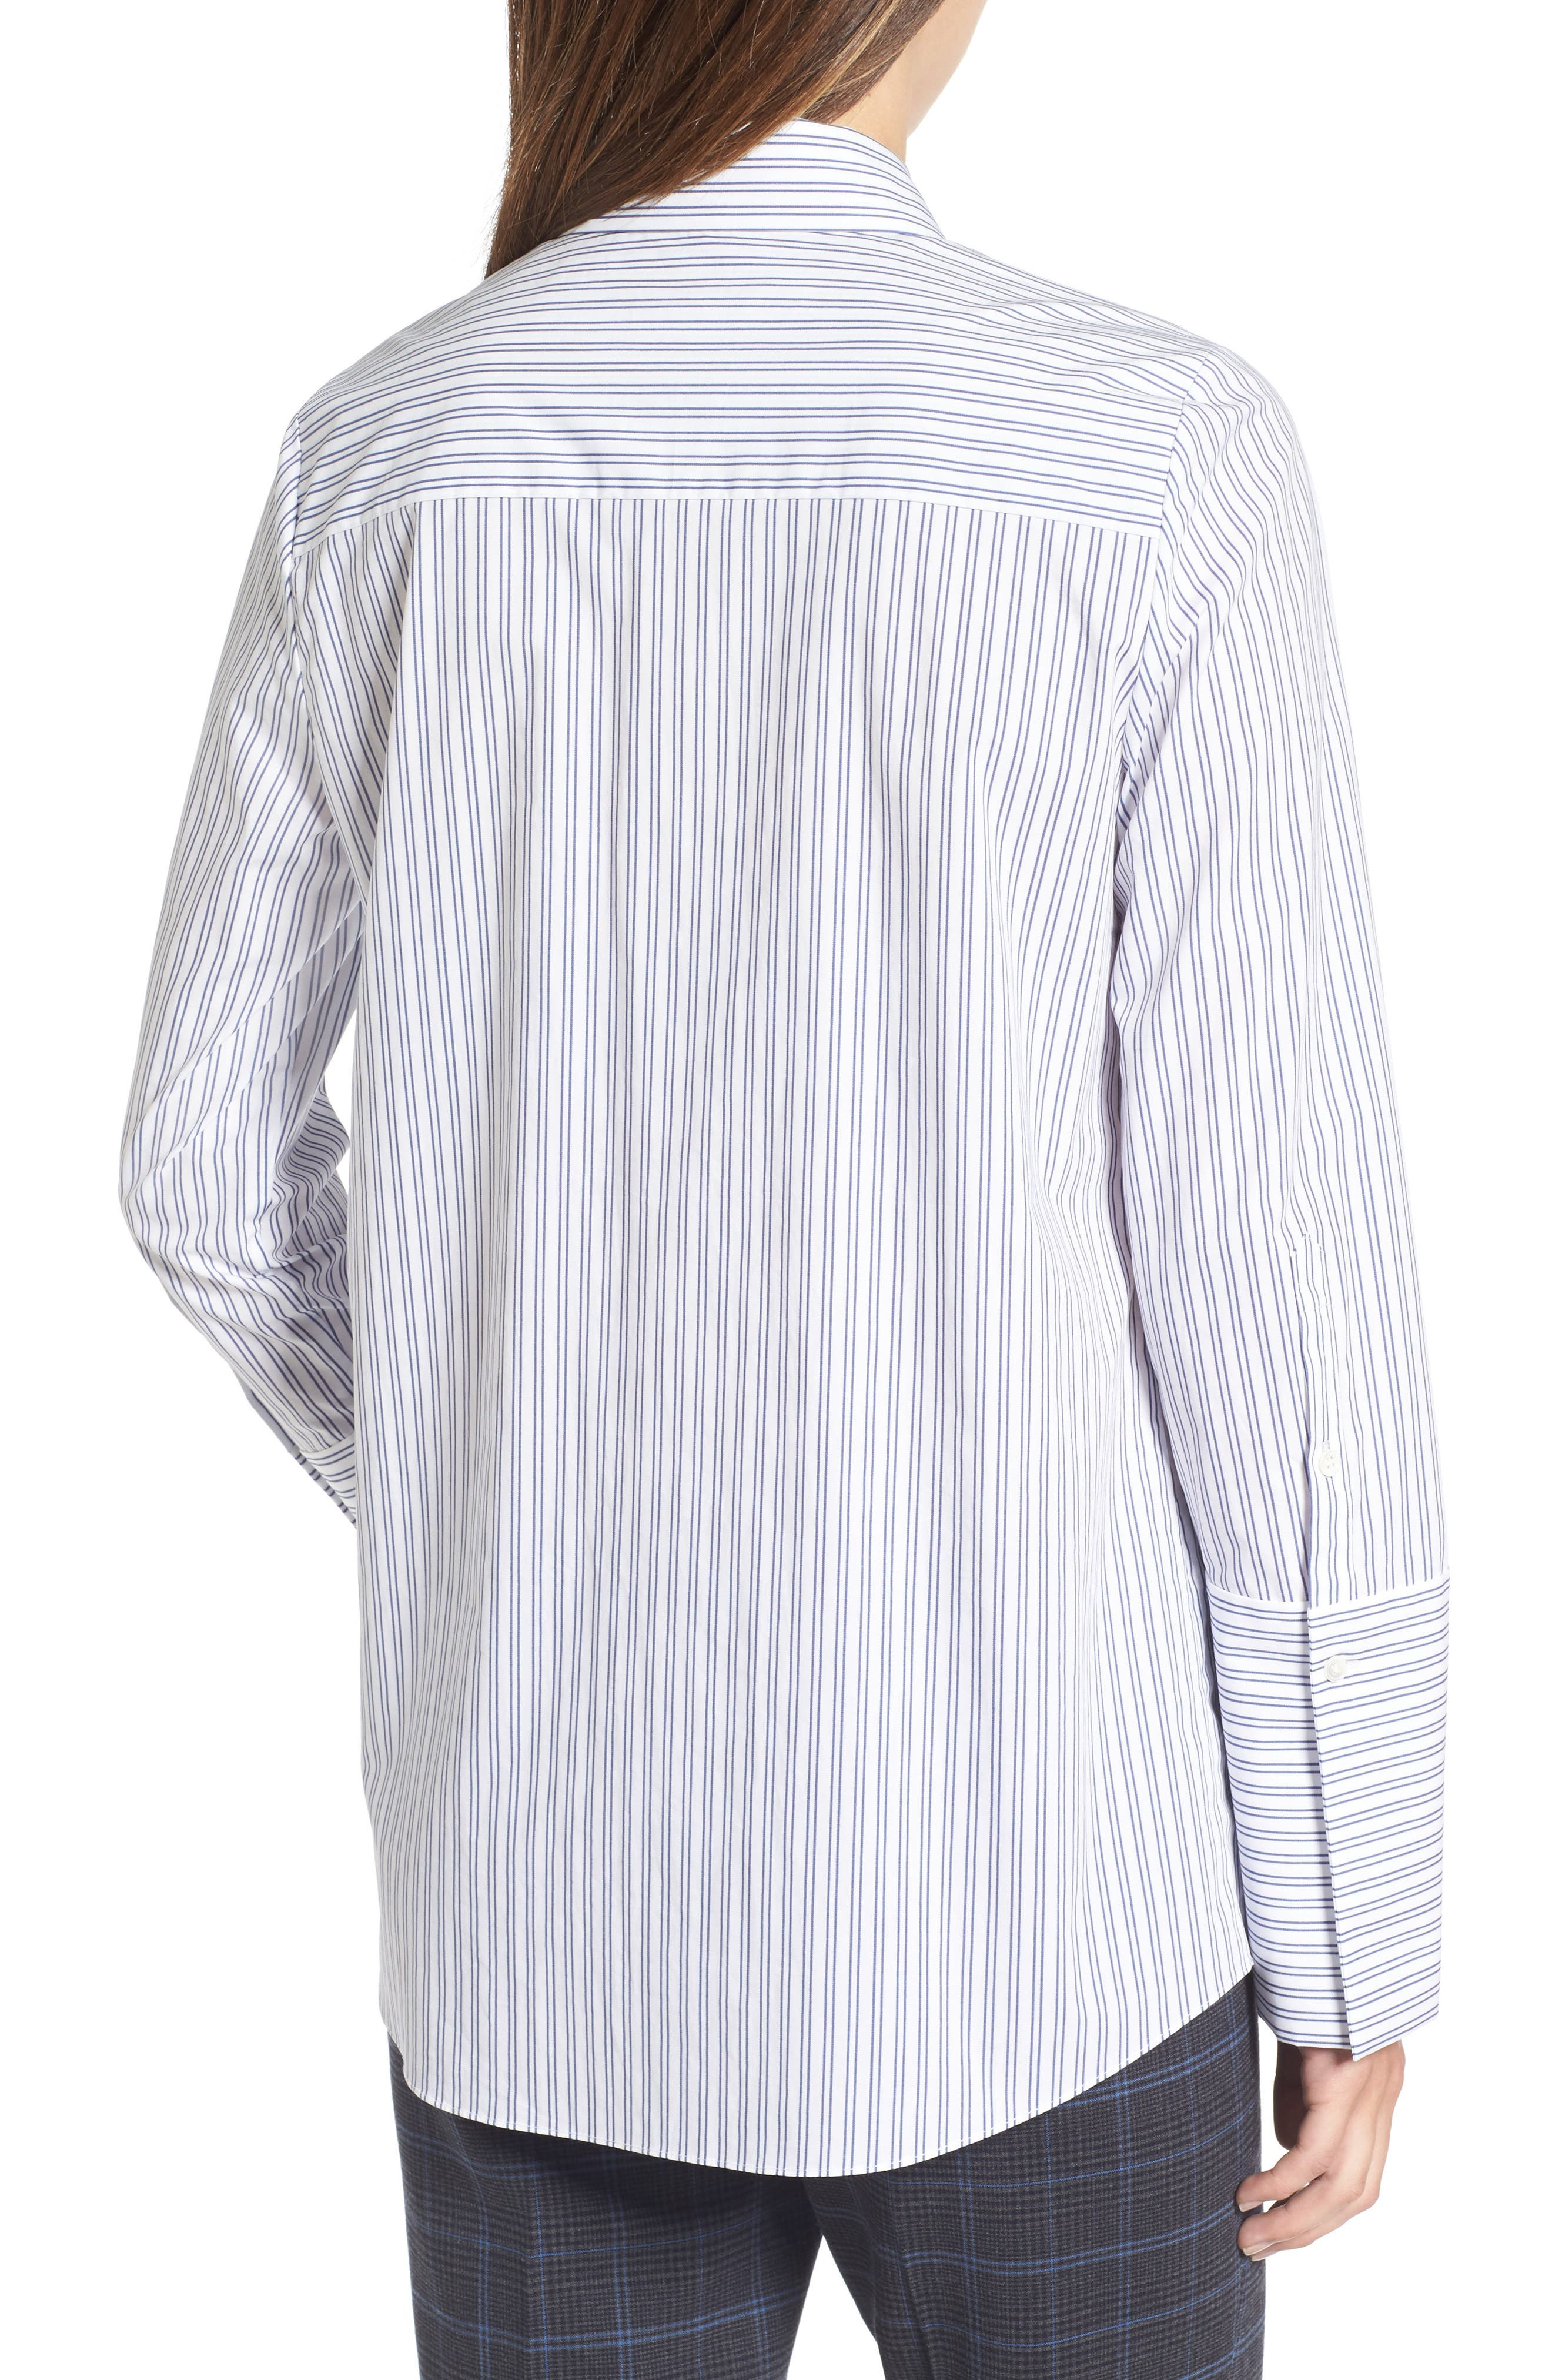 Exaggerated Cuff Stripe Shirt,                             Alternate thumbnail 2, color,                             450